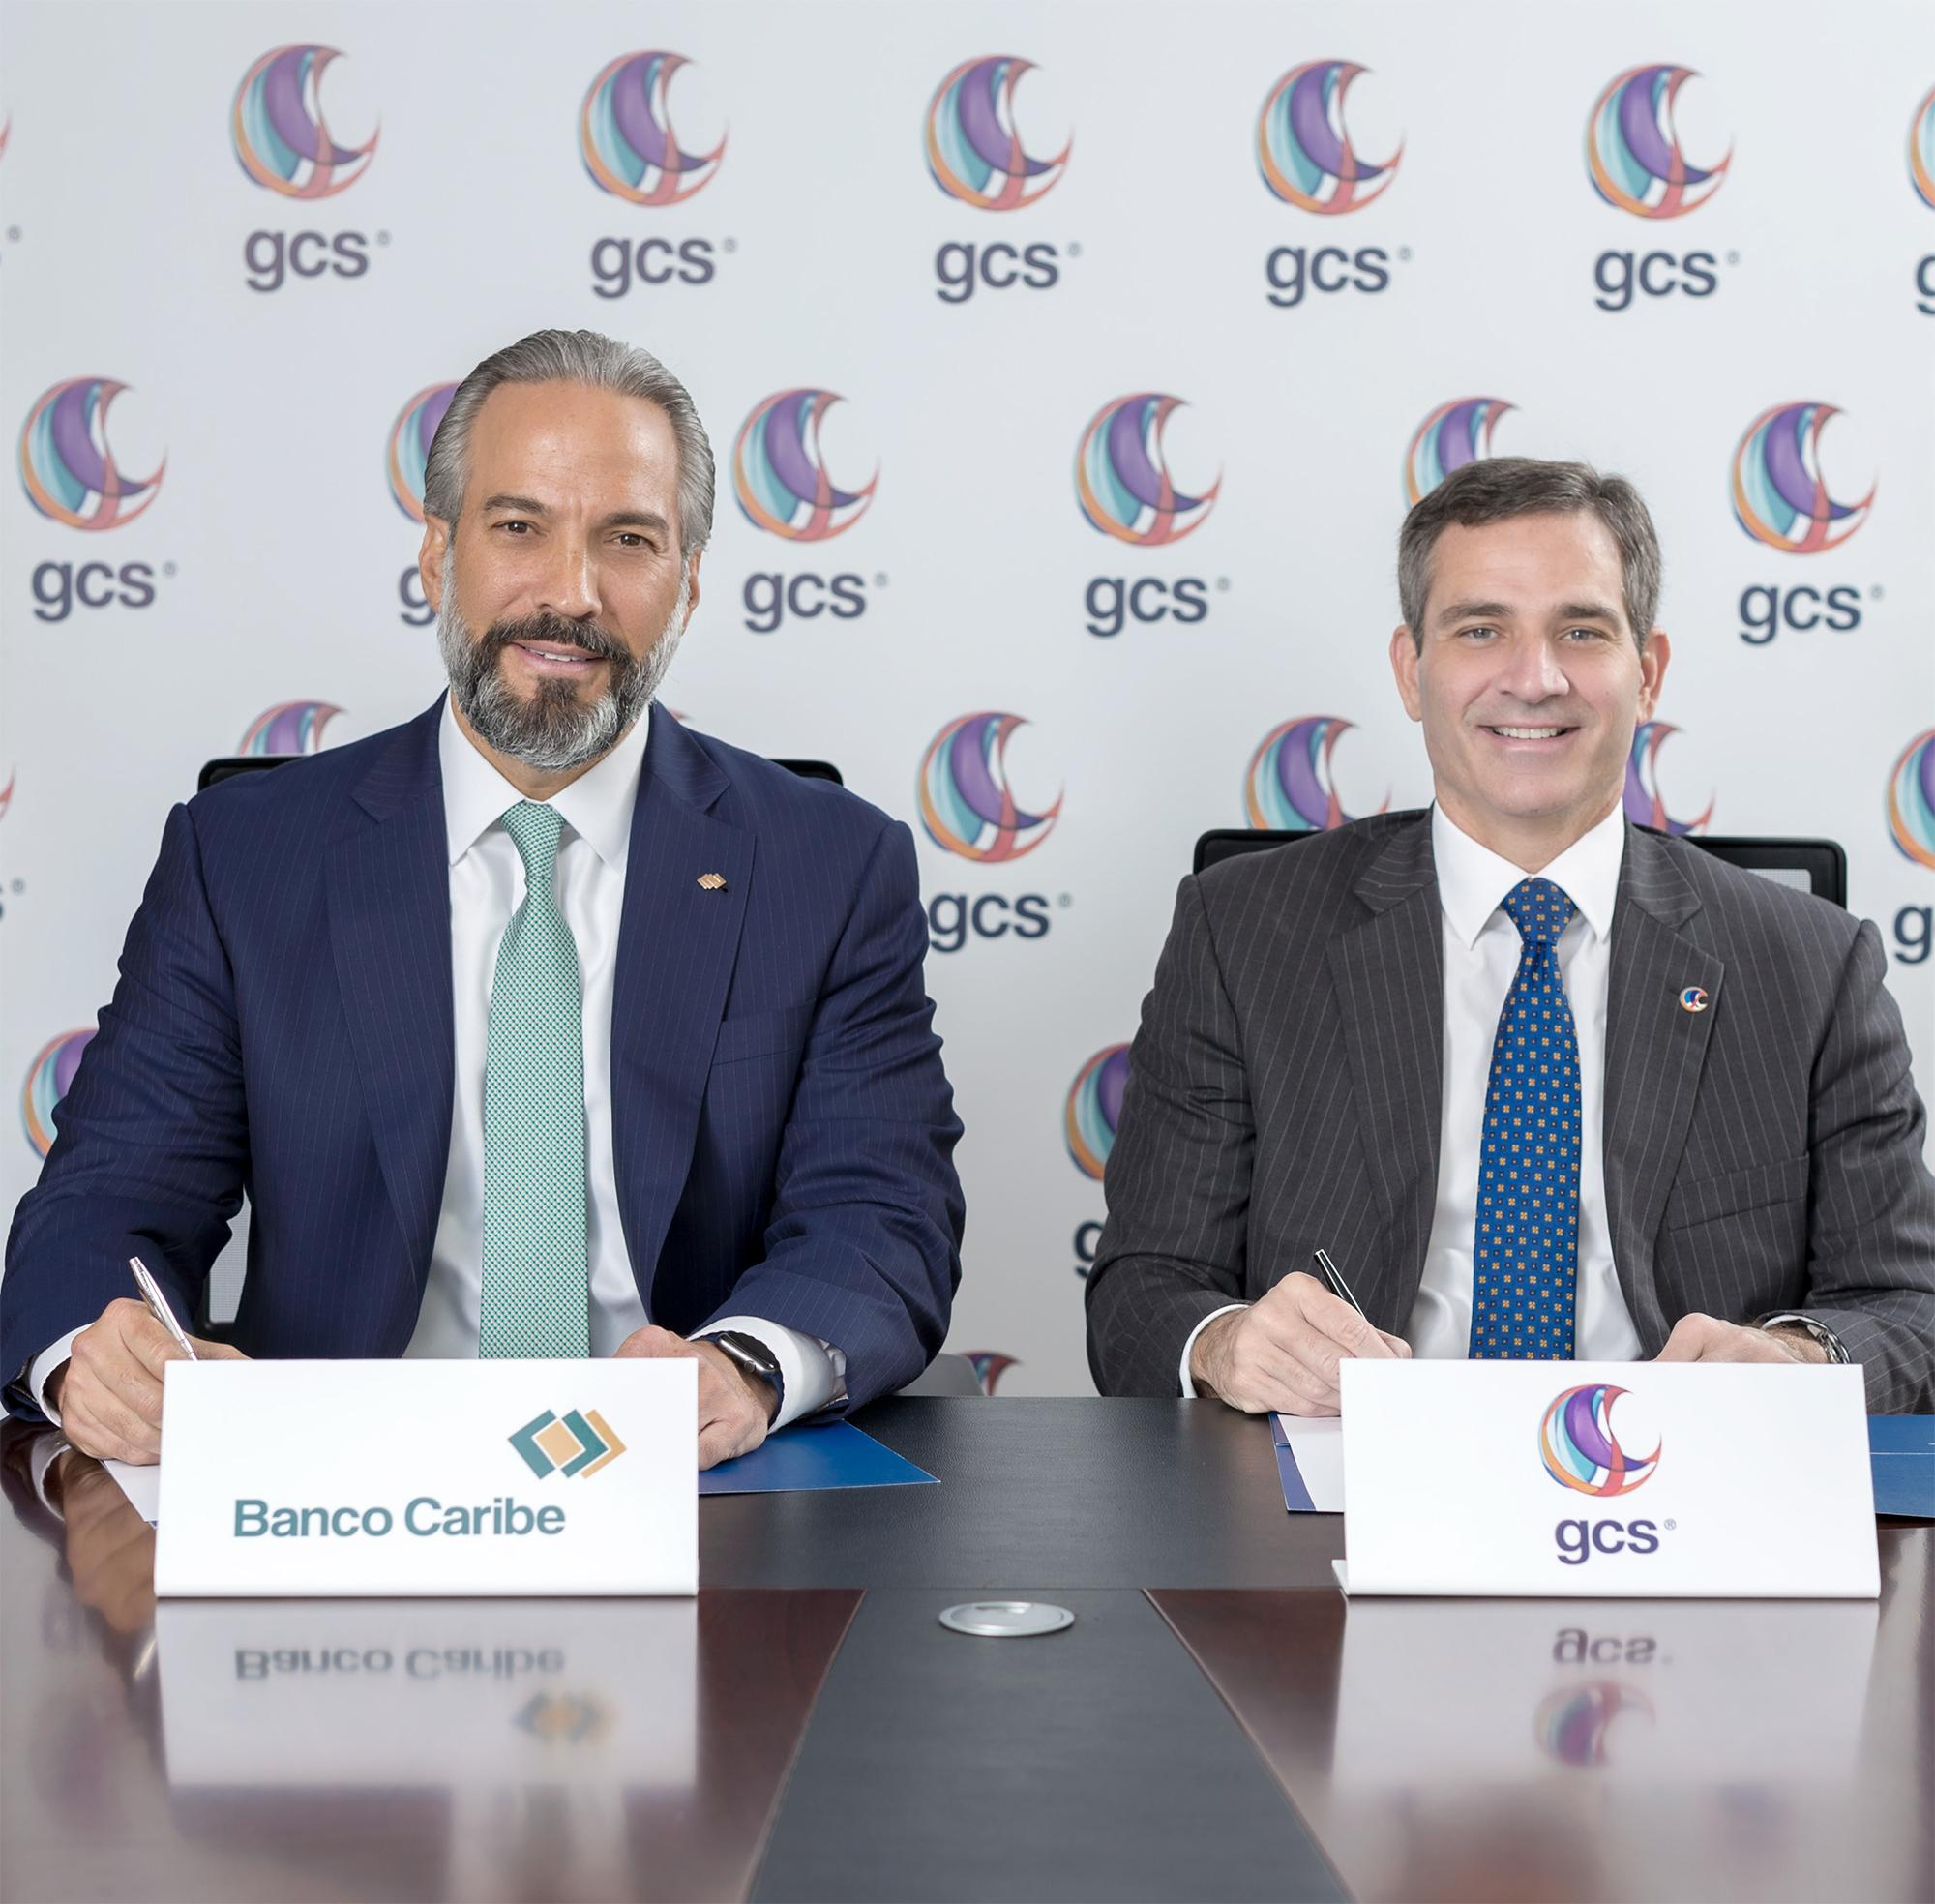 Alianza entre GCS y Banco Caribe - image  on http://gcs-international.com